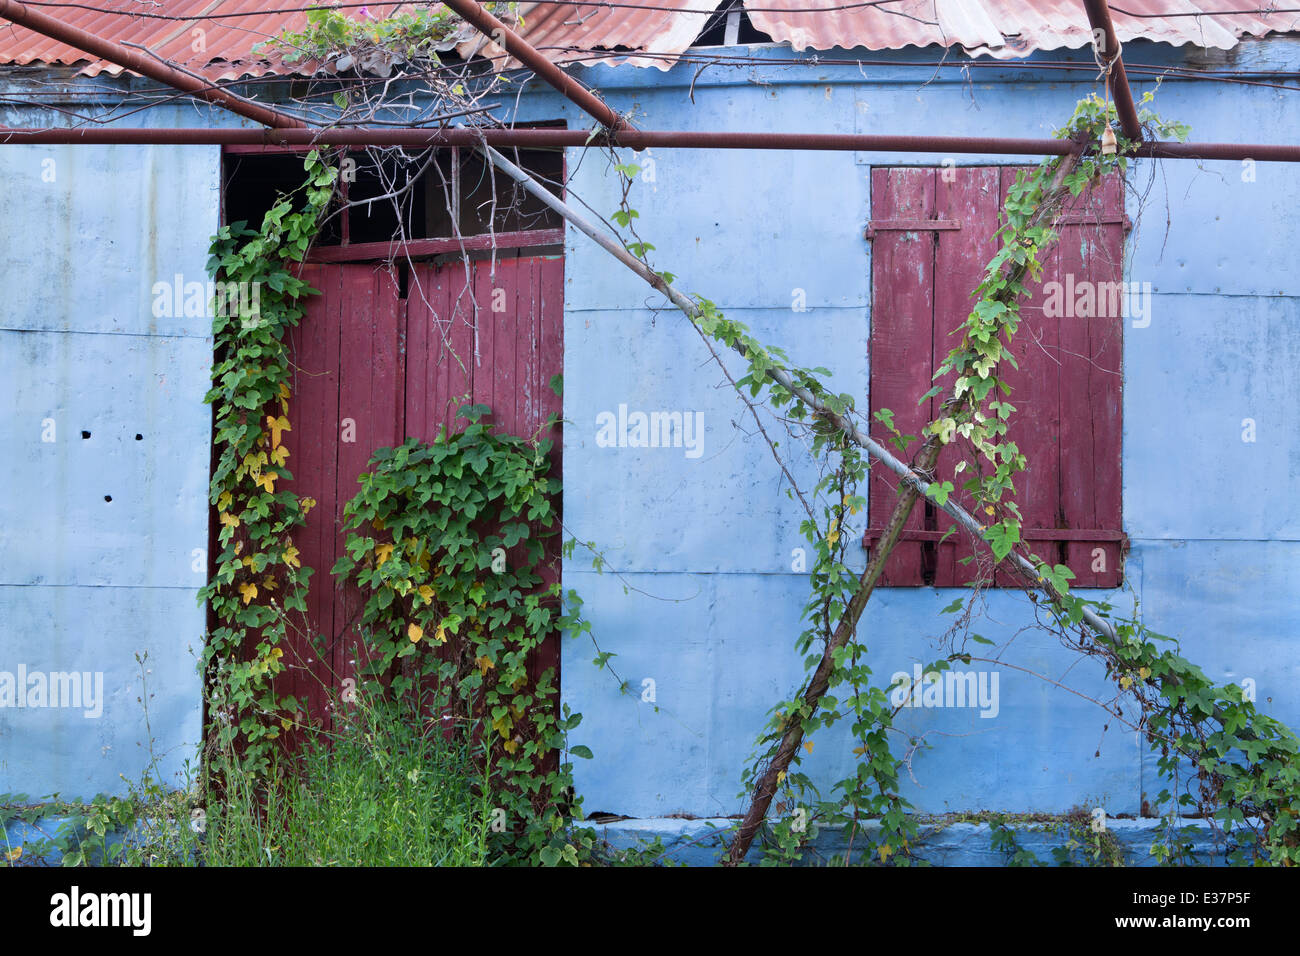 An old blue metal shed with a corrugated roof and red wooden door in Katelios is covered by a creeper. Stock Photo